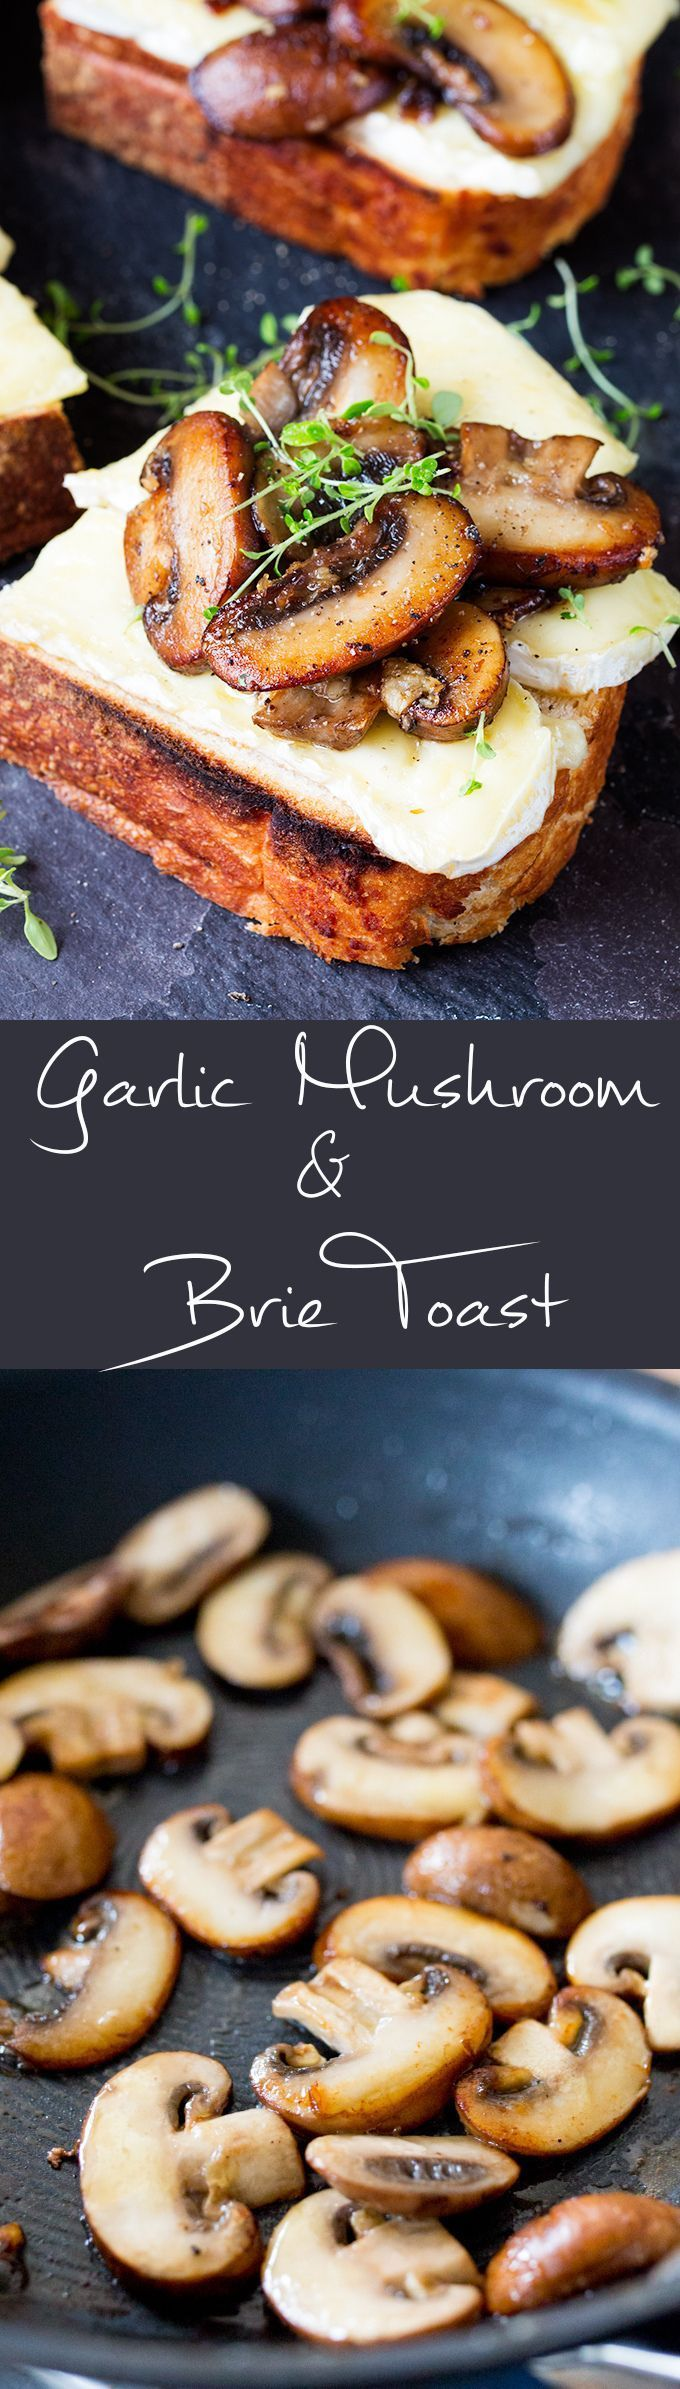 9918 best french food recipes images on pinterest french food garlic mushroom and brie toast a quick but delicious lunch pair with stone hill winerys chambourcin find this pin and more on french food recipes forumfinder Image collections